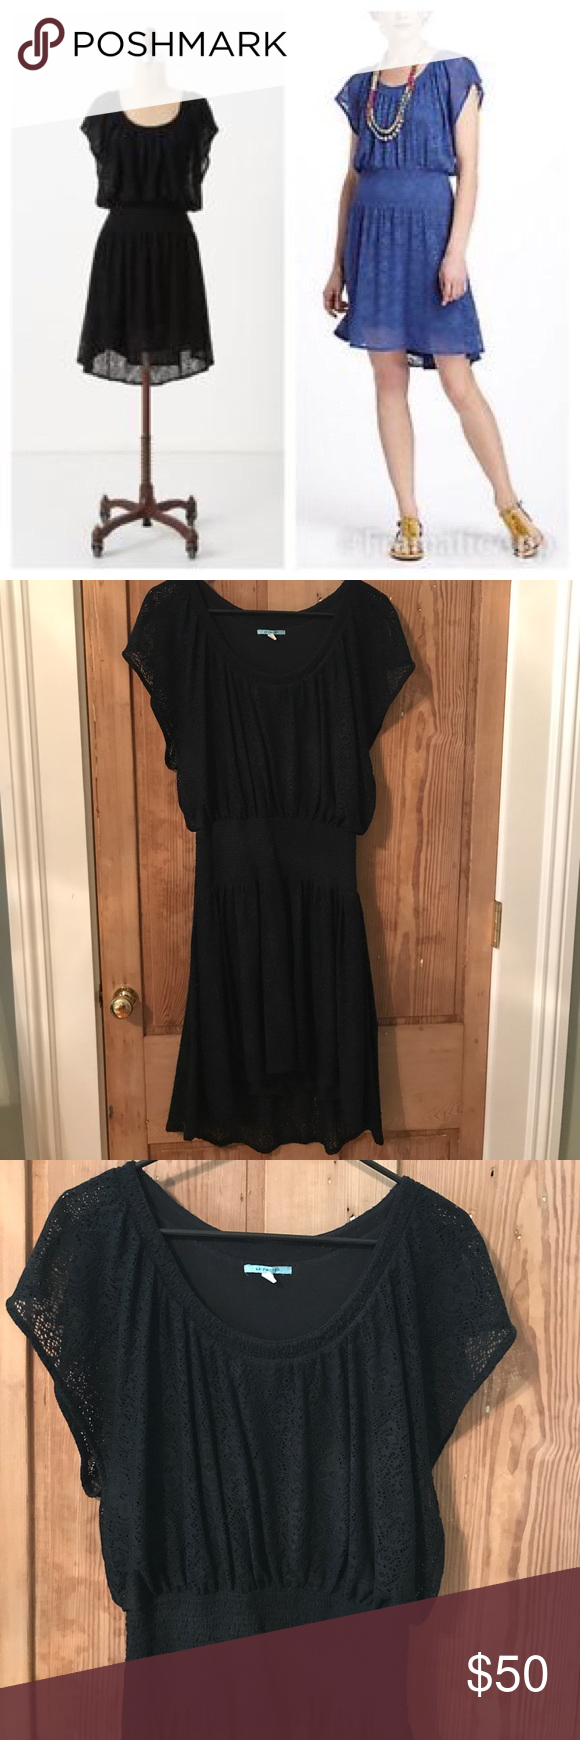 4198b8428576a Black High low Leifnotes Dress Anthropologie LEIFNOTES Black eyelet lace  Short Sleeve smocked high low dress size small. Gently worn no flaws.